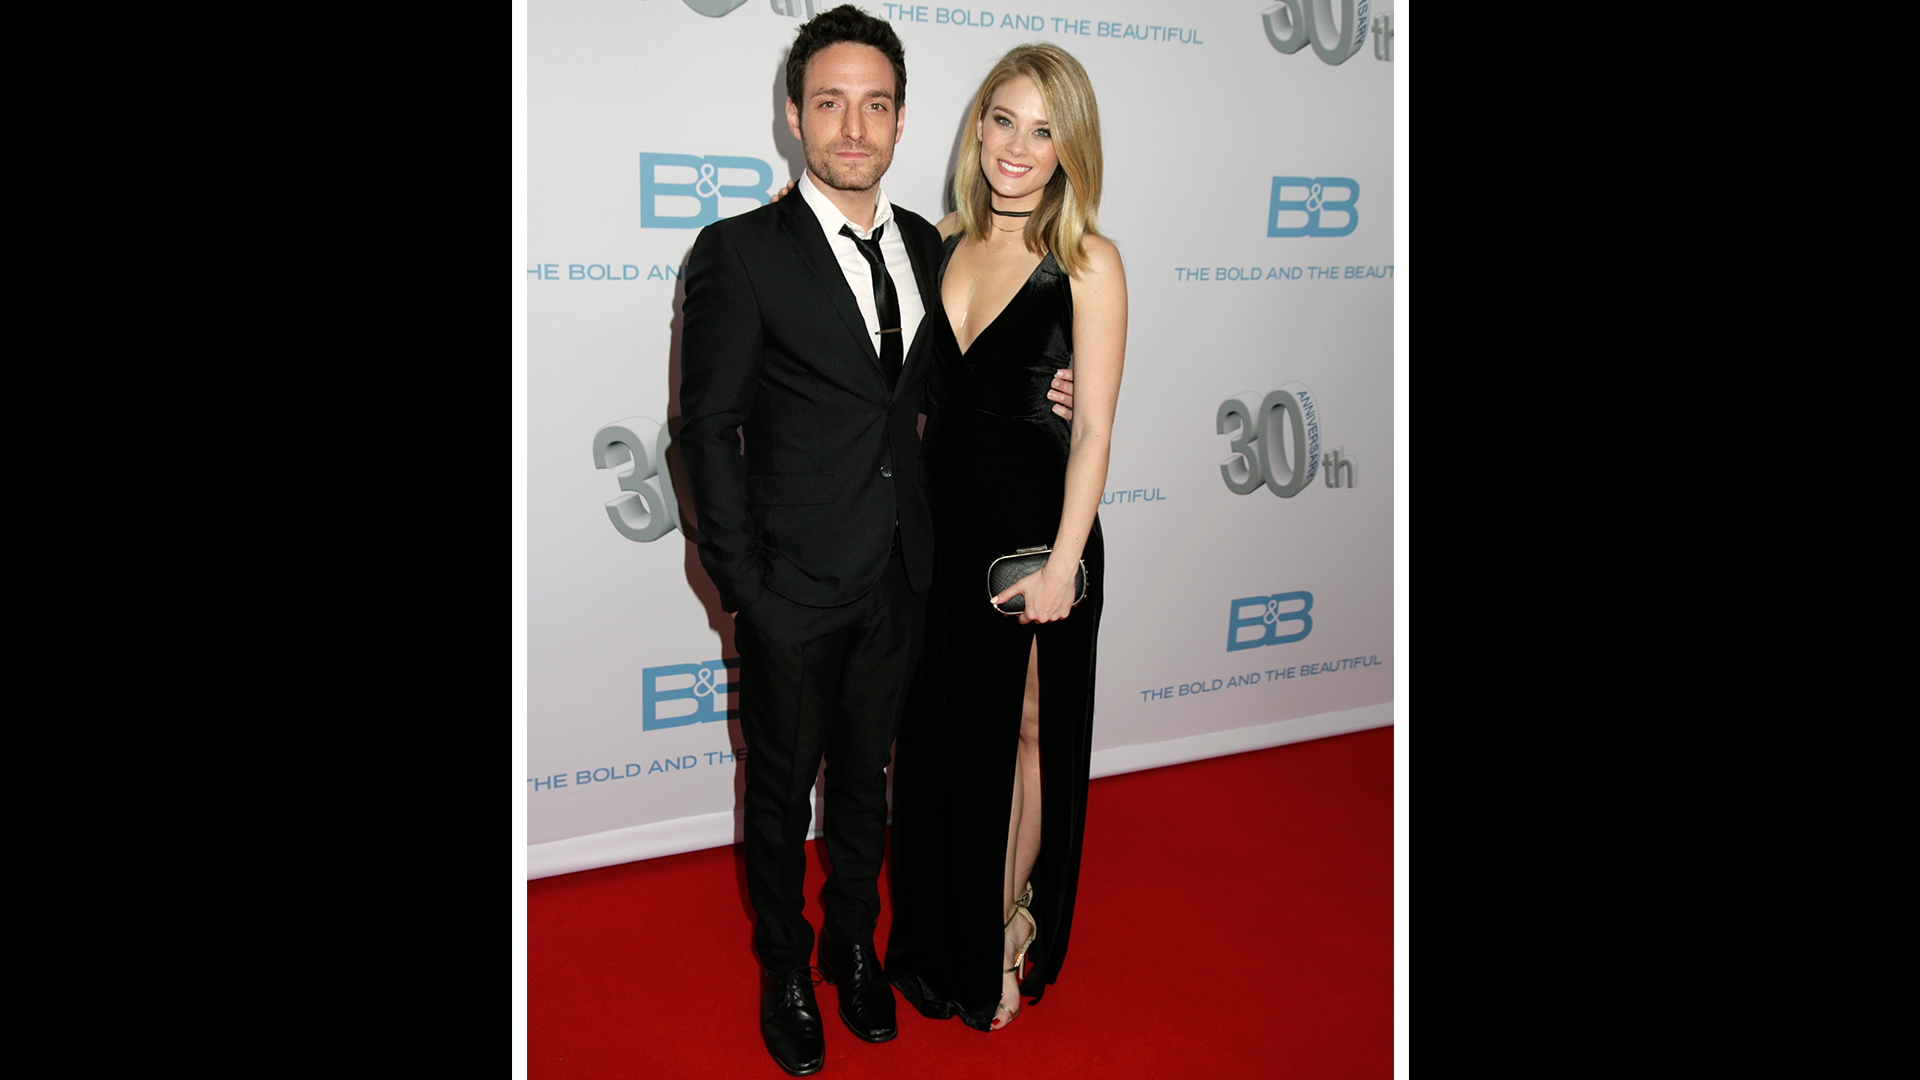 Kim Matula makes an appearance with her date, Ben Goldberg.